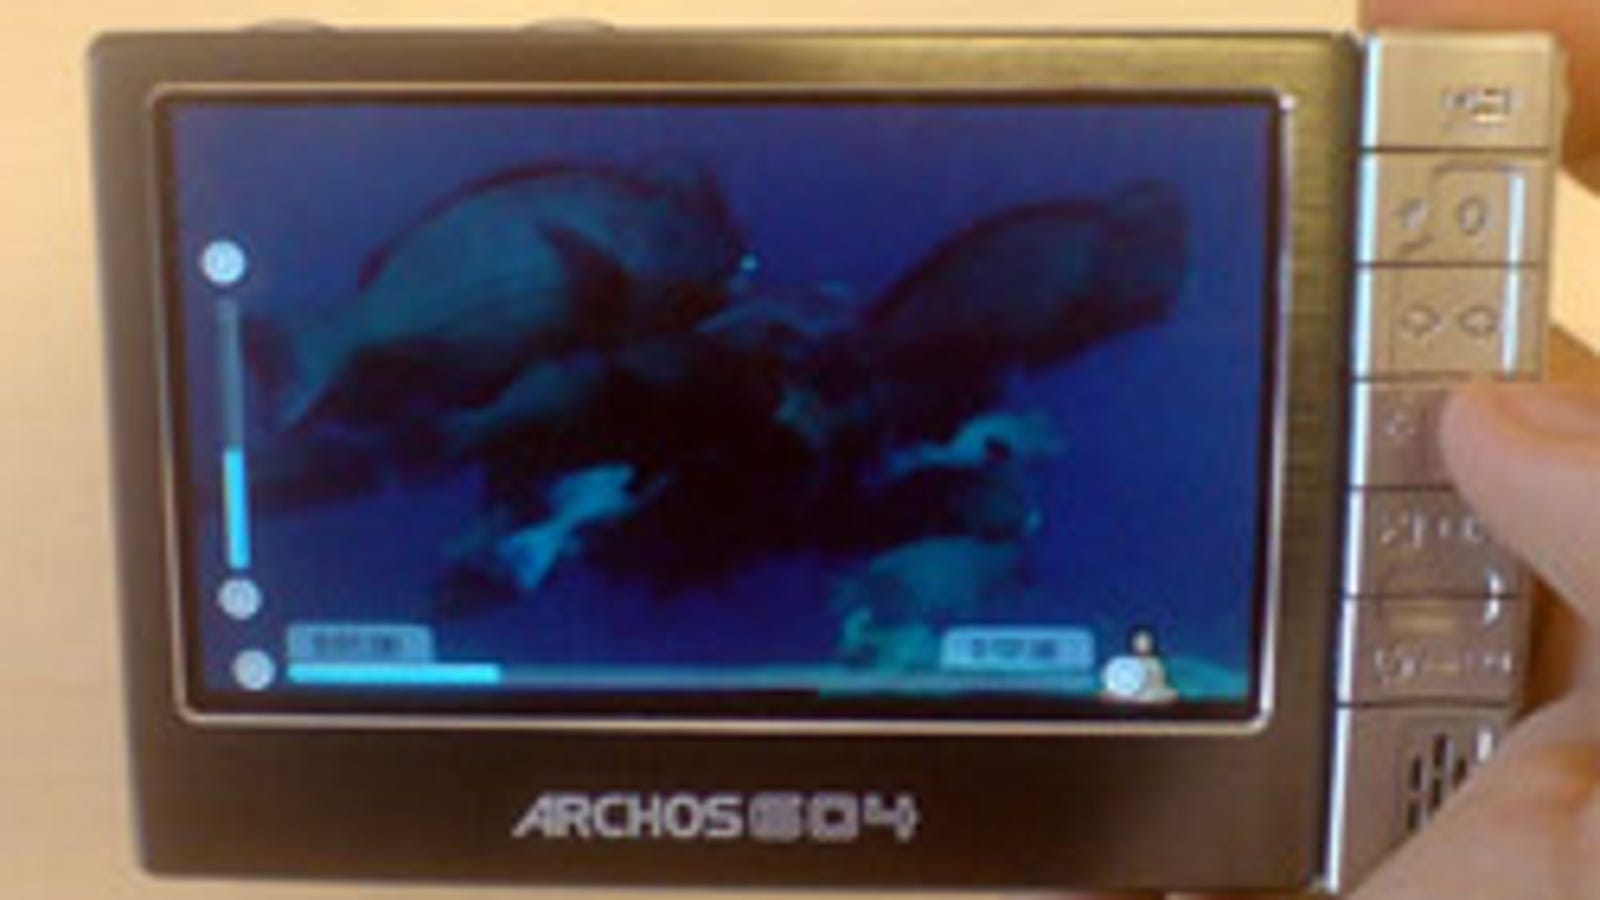 ARCHOS 604 FIRMWARE WINDOWS 7 DRIVERS DOWNLOAD